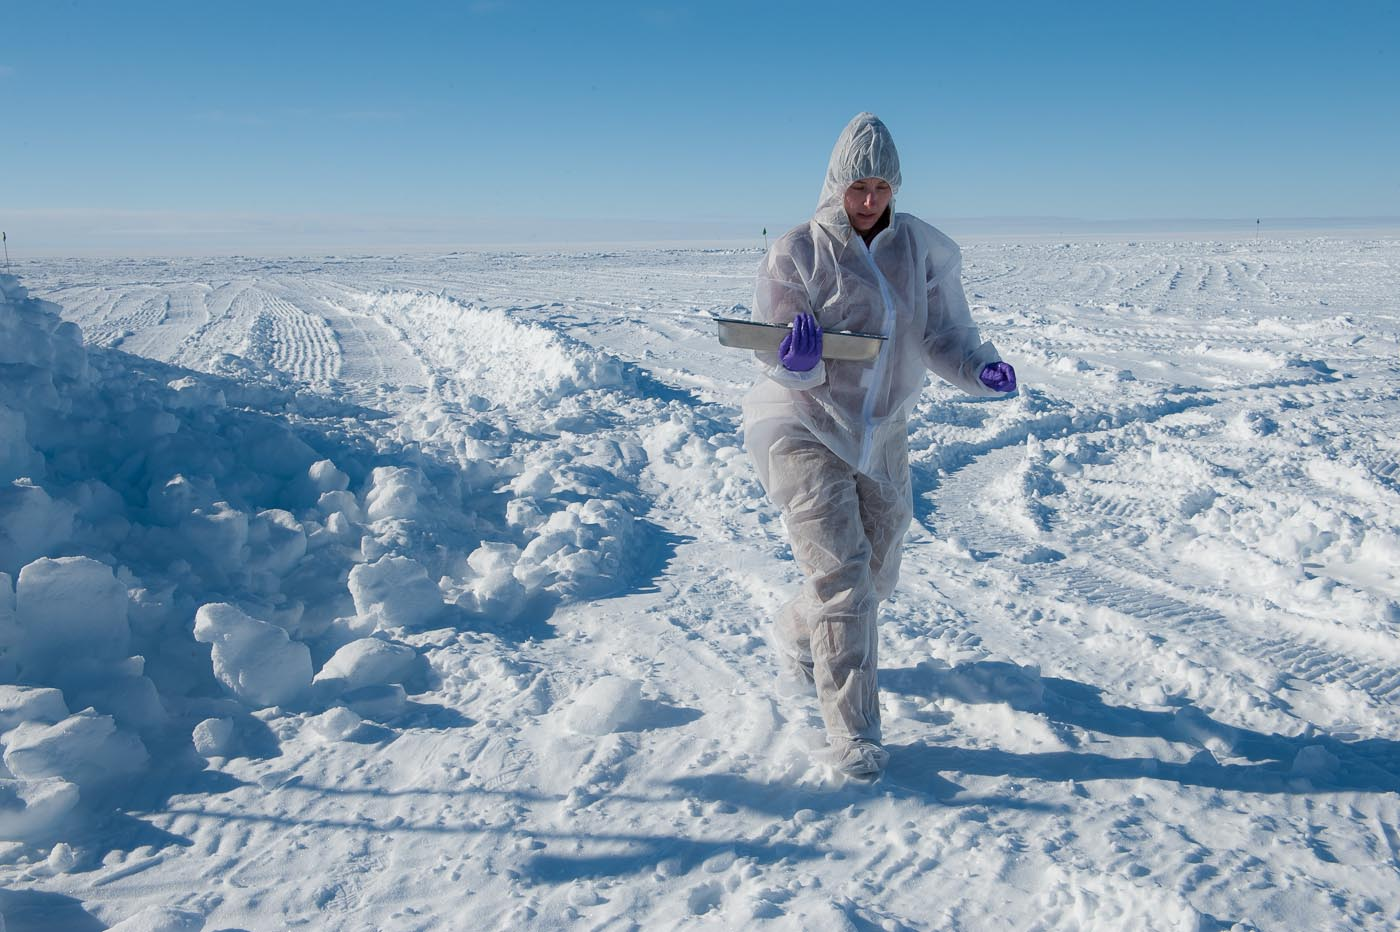 Trista Vick-Majors carries samples from the ice cave freezer at Subglacial Lake Whillans to the lab. PHOTO BY J.T. THOMAS